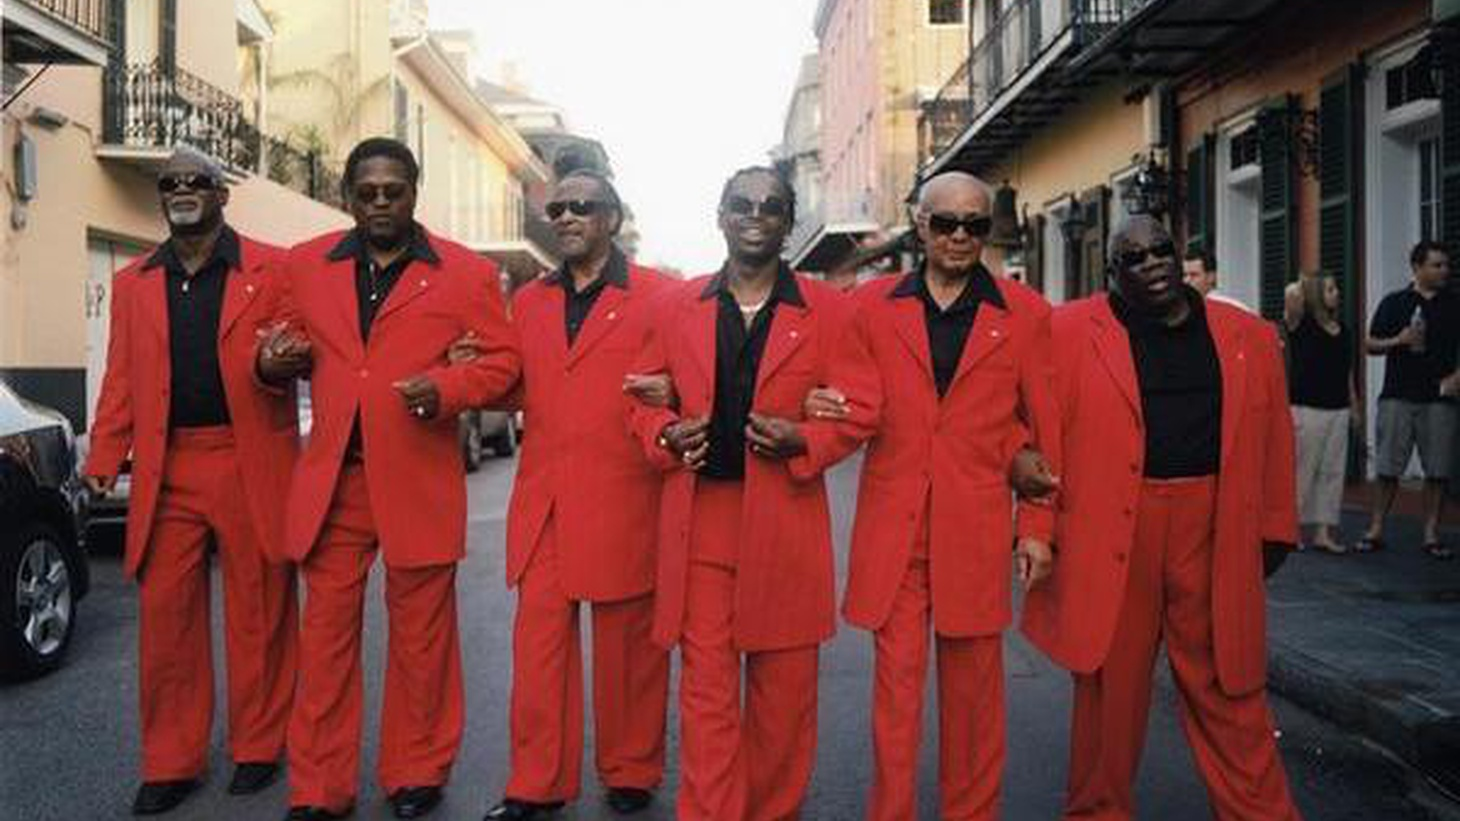 The Blind Boys of Alabama return with spiritually inspired music on Morning Becomes Eclectic at 11:15am.